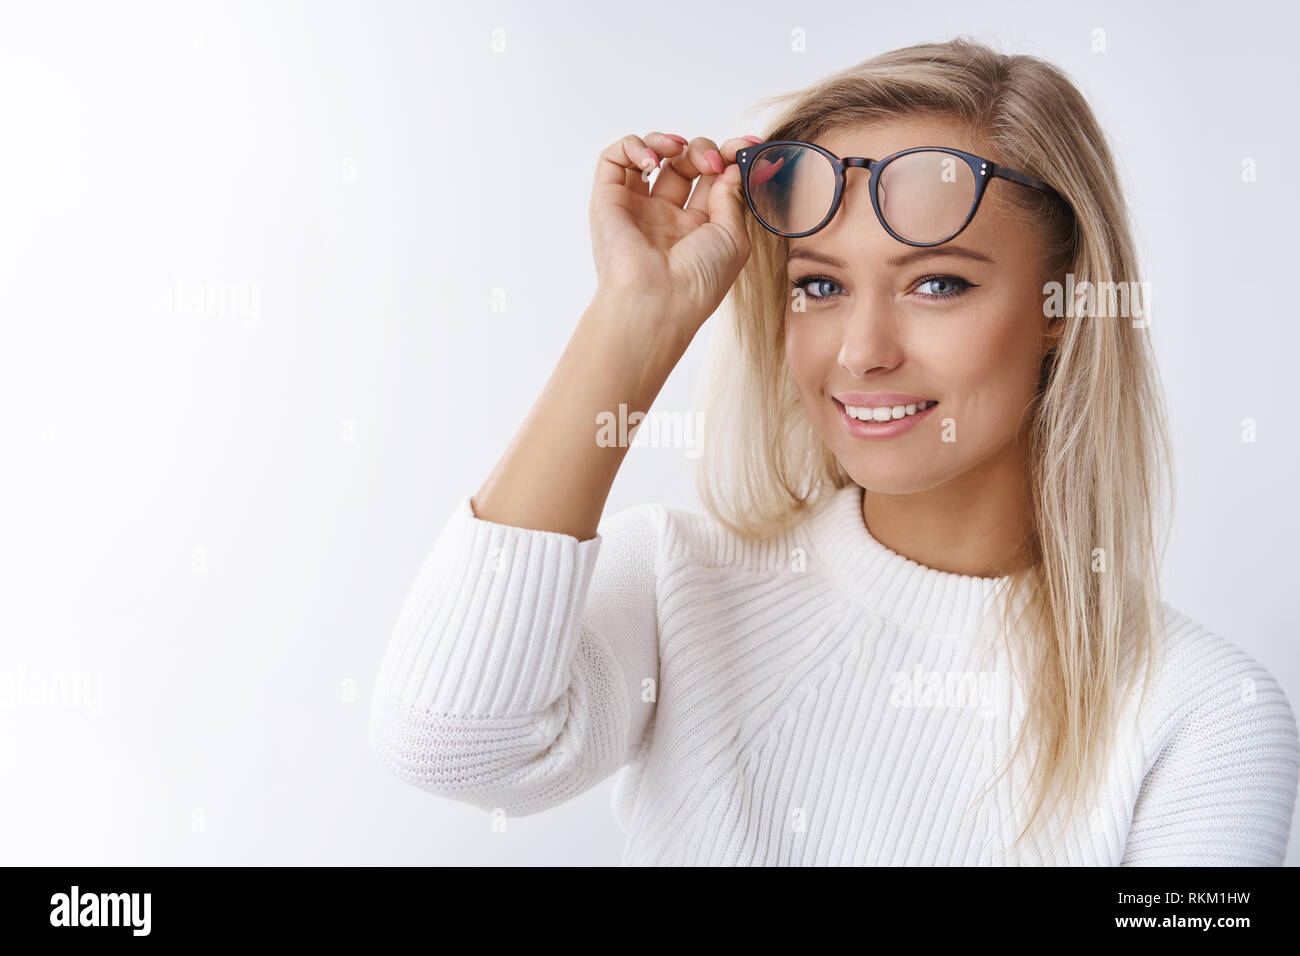 Close-up shot of attractive young and happy european female in sweater taking off glasses looking delighted with pure upbeat smile promoting eyewear - Stock Image